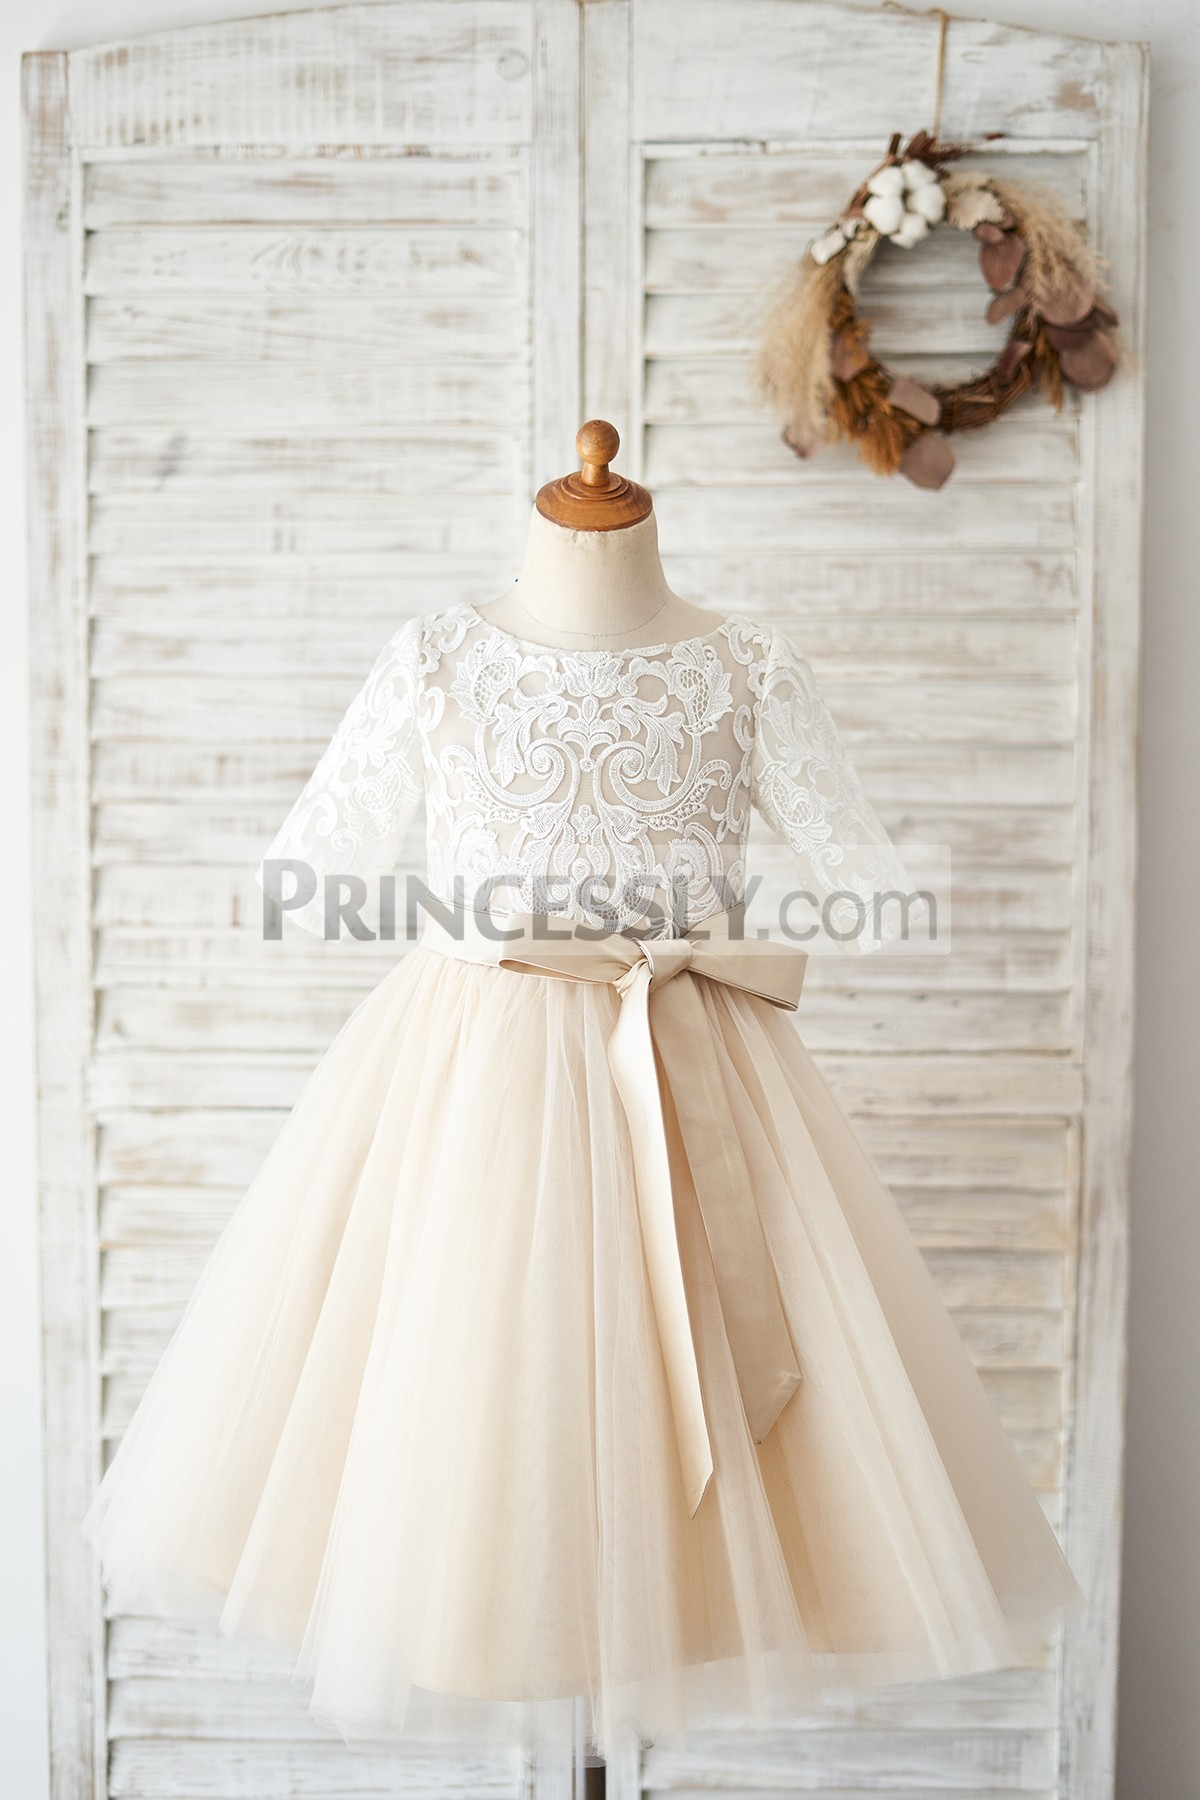 Princessly.com-K1004029-Short Sleeves Ivory Lace Tulle Wedding Flower Girl Dress with Champagne Lining-31